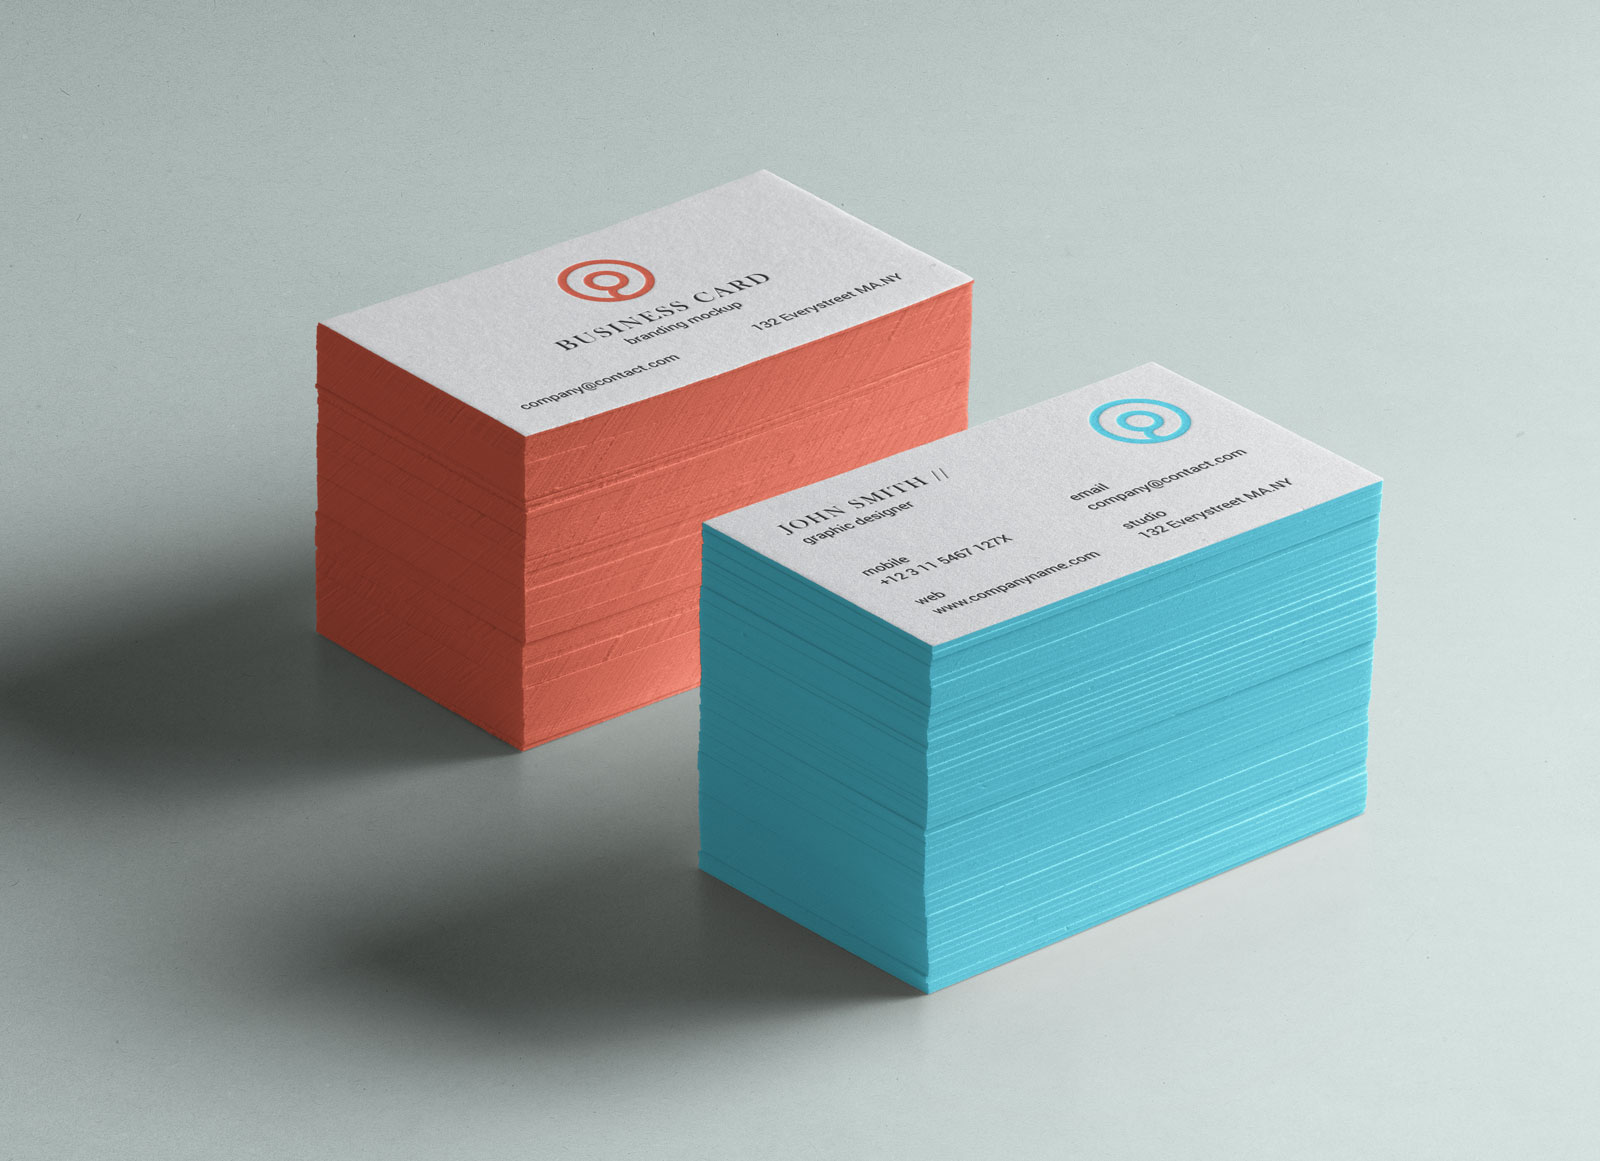 Free letterpressed business card with color edge mockup psd good free letterpressed business card mockup psd reheart